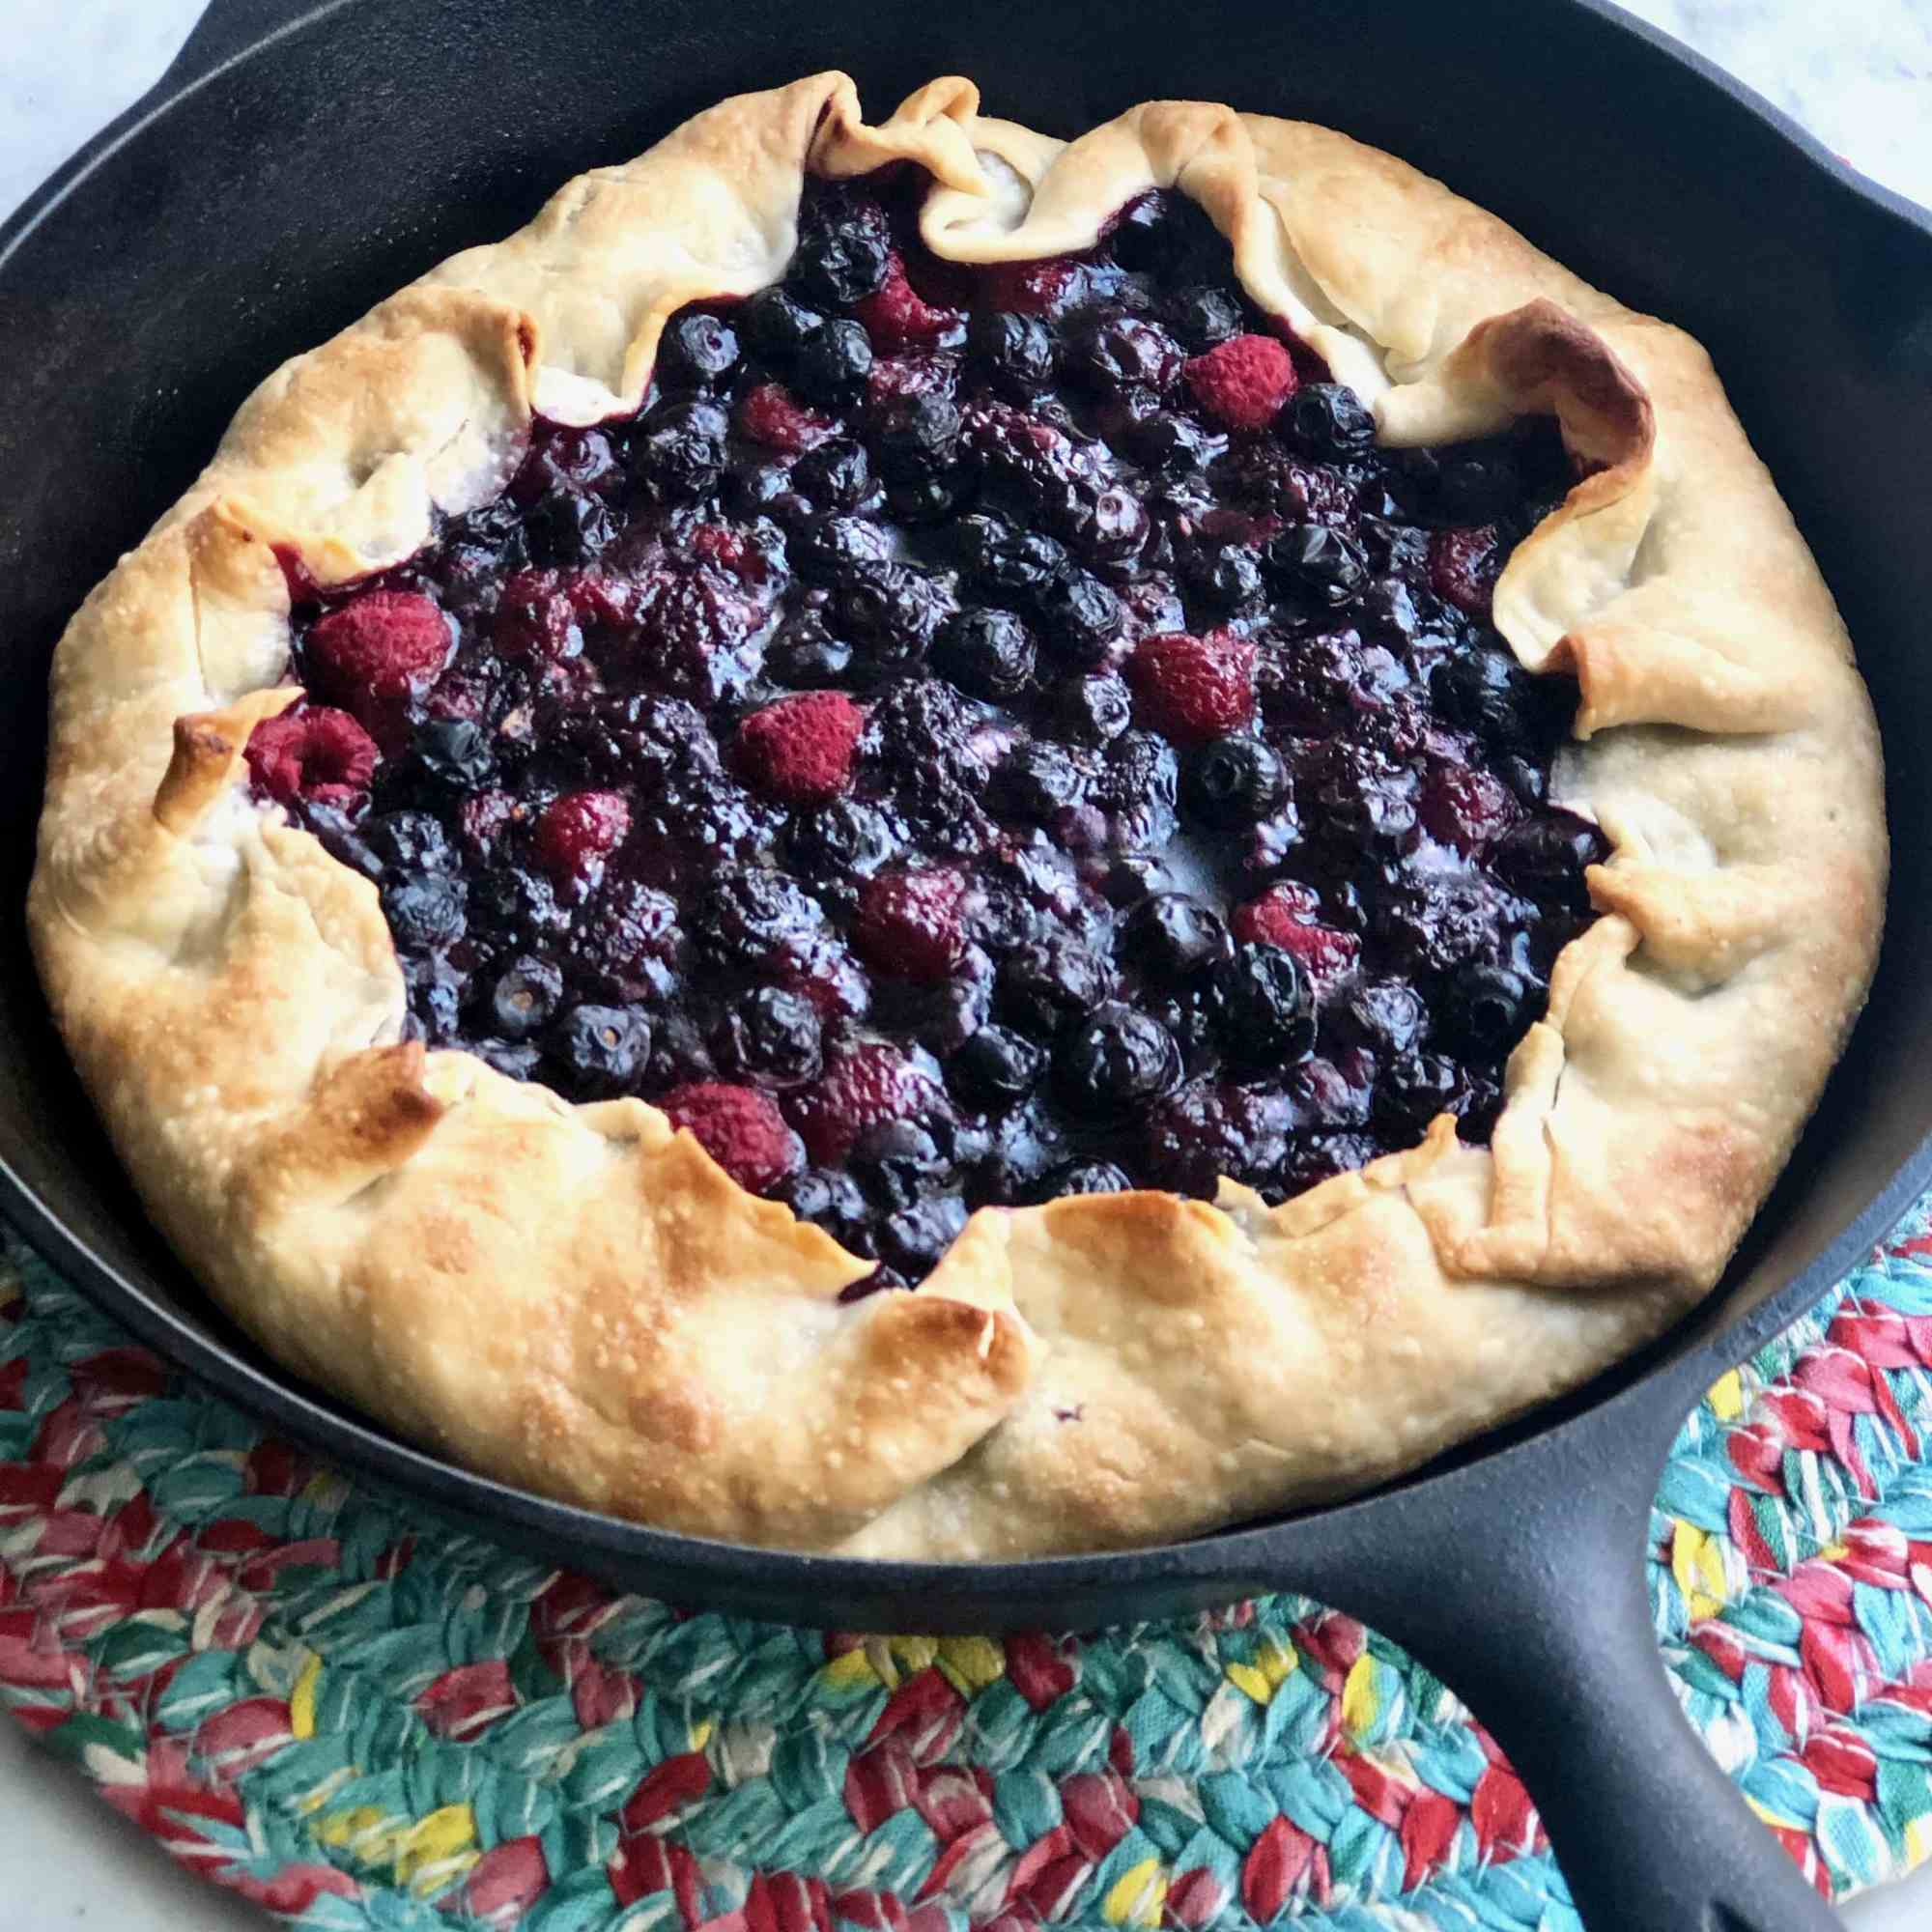 dough wrapped over berries in a cast iron skillet on a colorful placemat